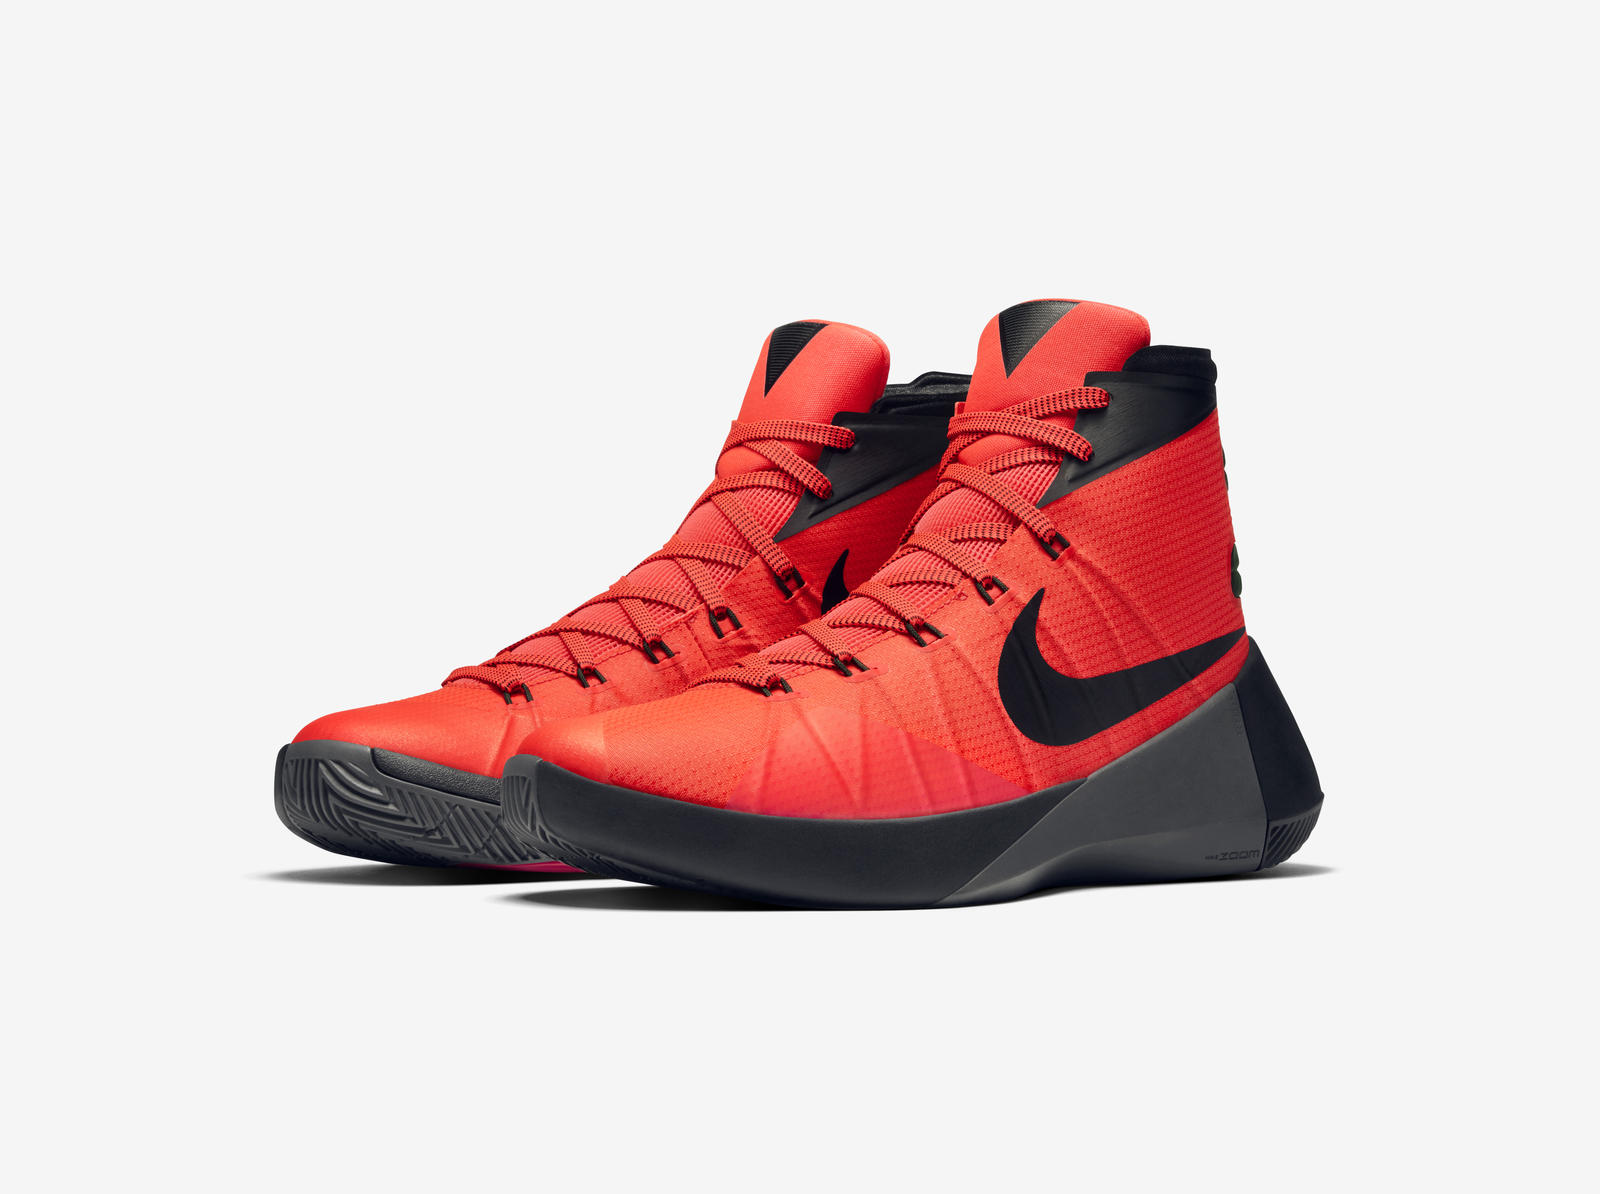 Nike Hyperdunk 2015   Nike Sneakers Online at Best Prices ... 24c8c811a1